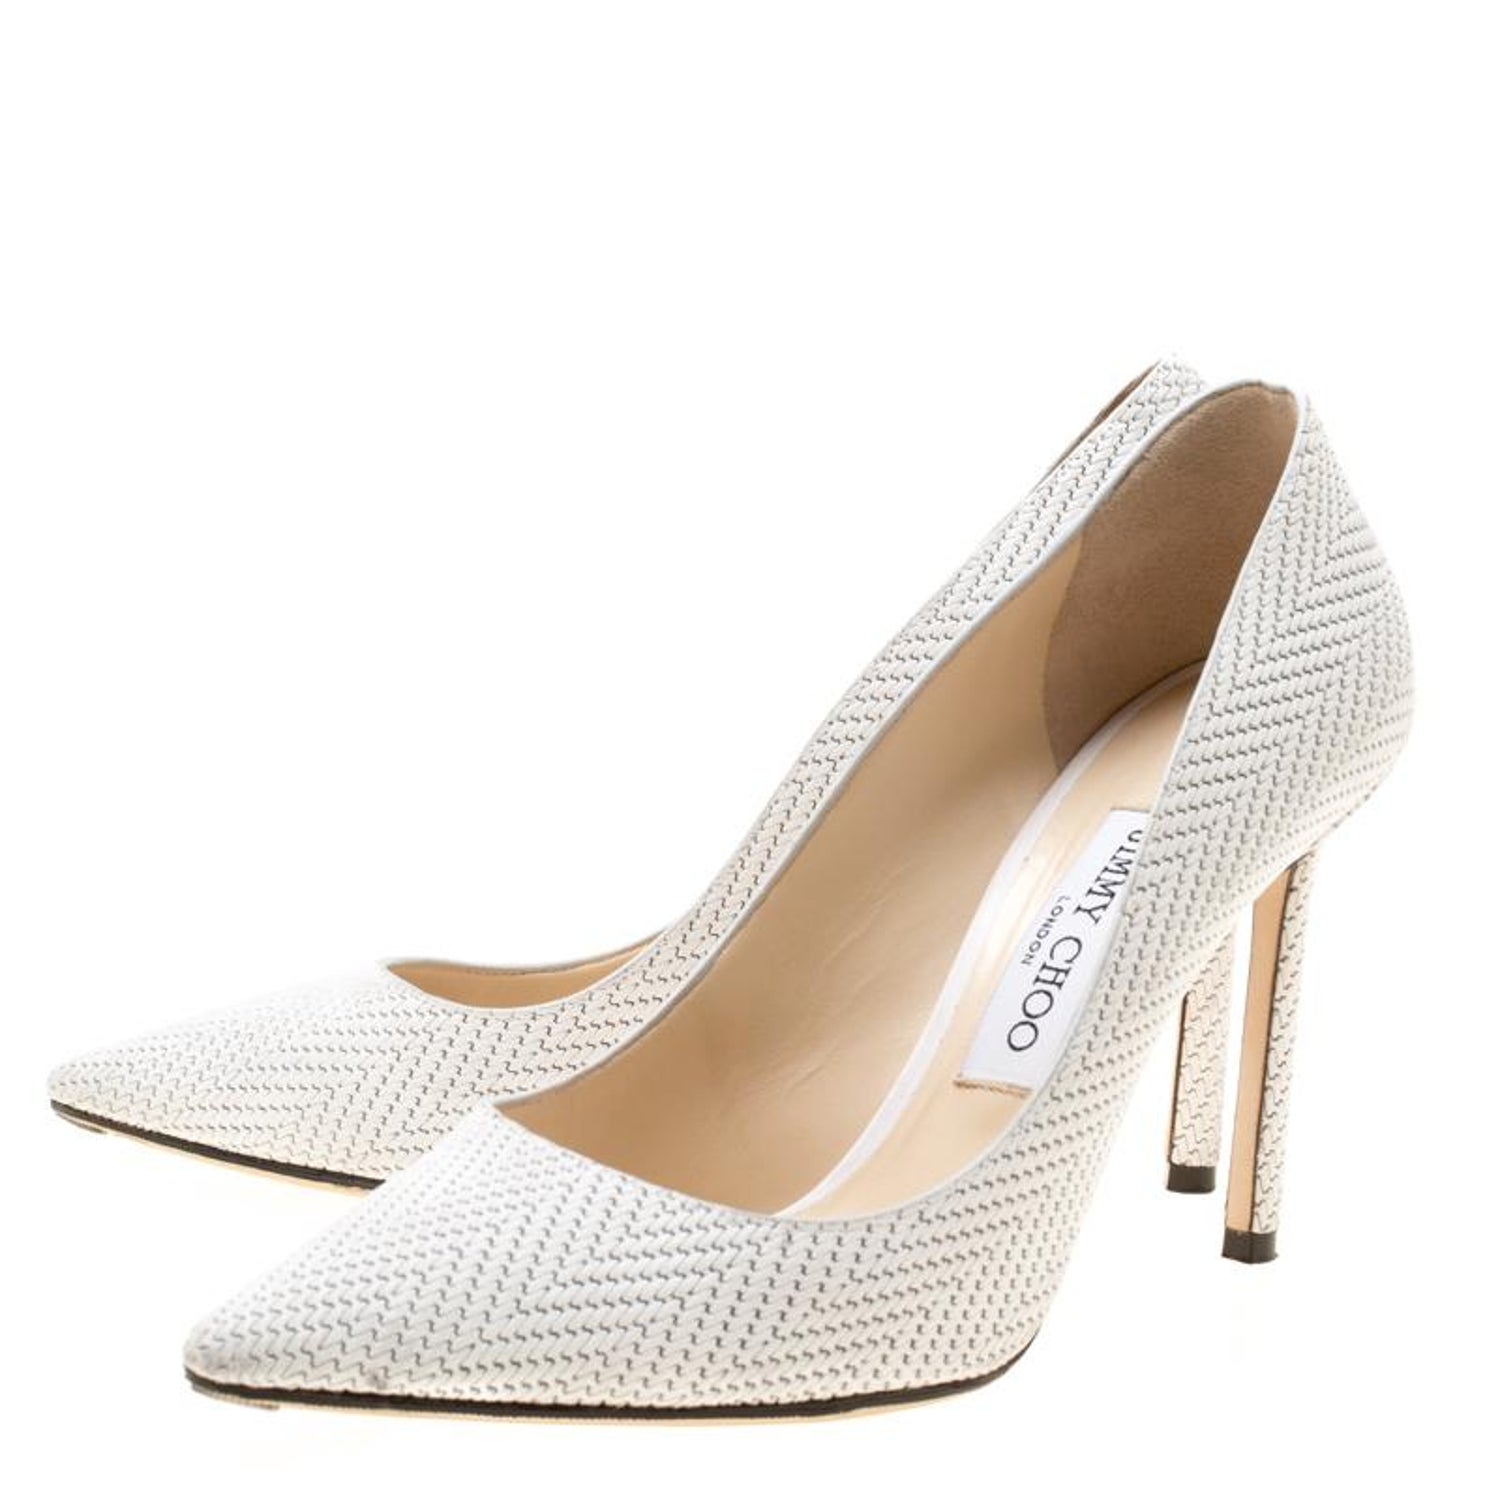 c5a8a4cc123e7 Jimmy Choo White Knitted Nubuck Leather Romy Pointed Toe Pumps Size 37 For  Sale at 1stdibs